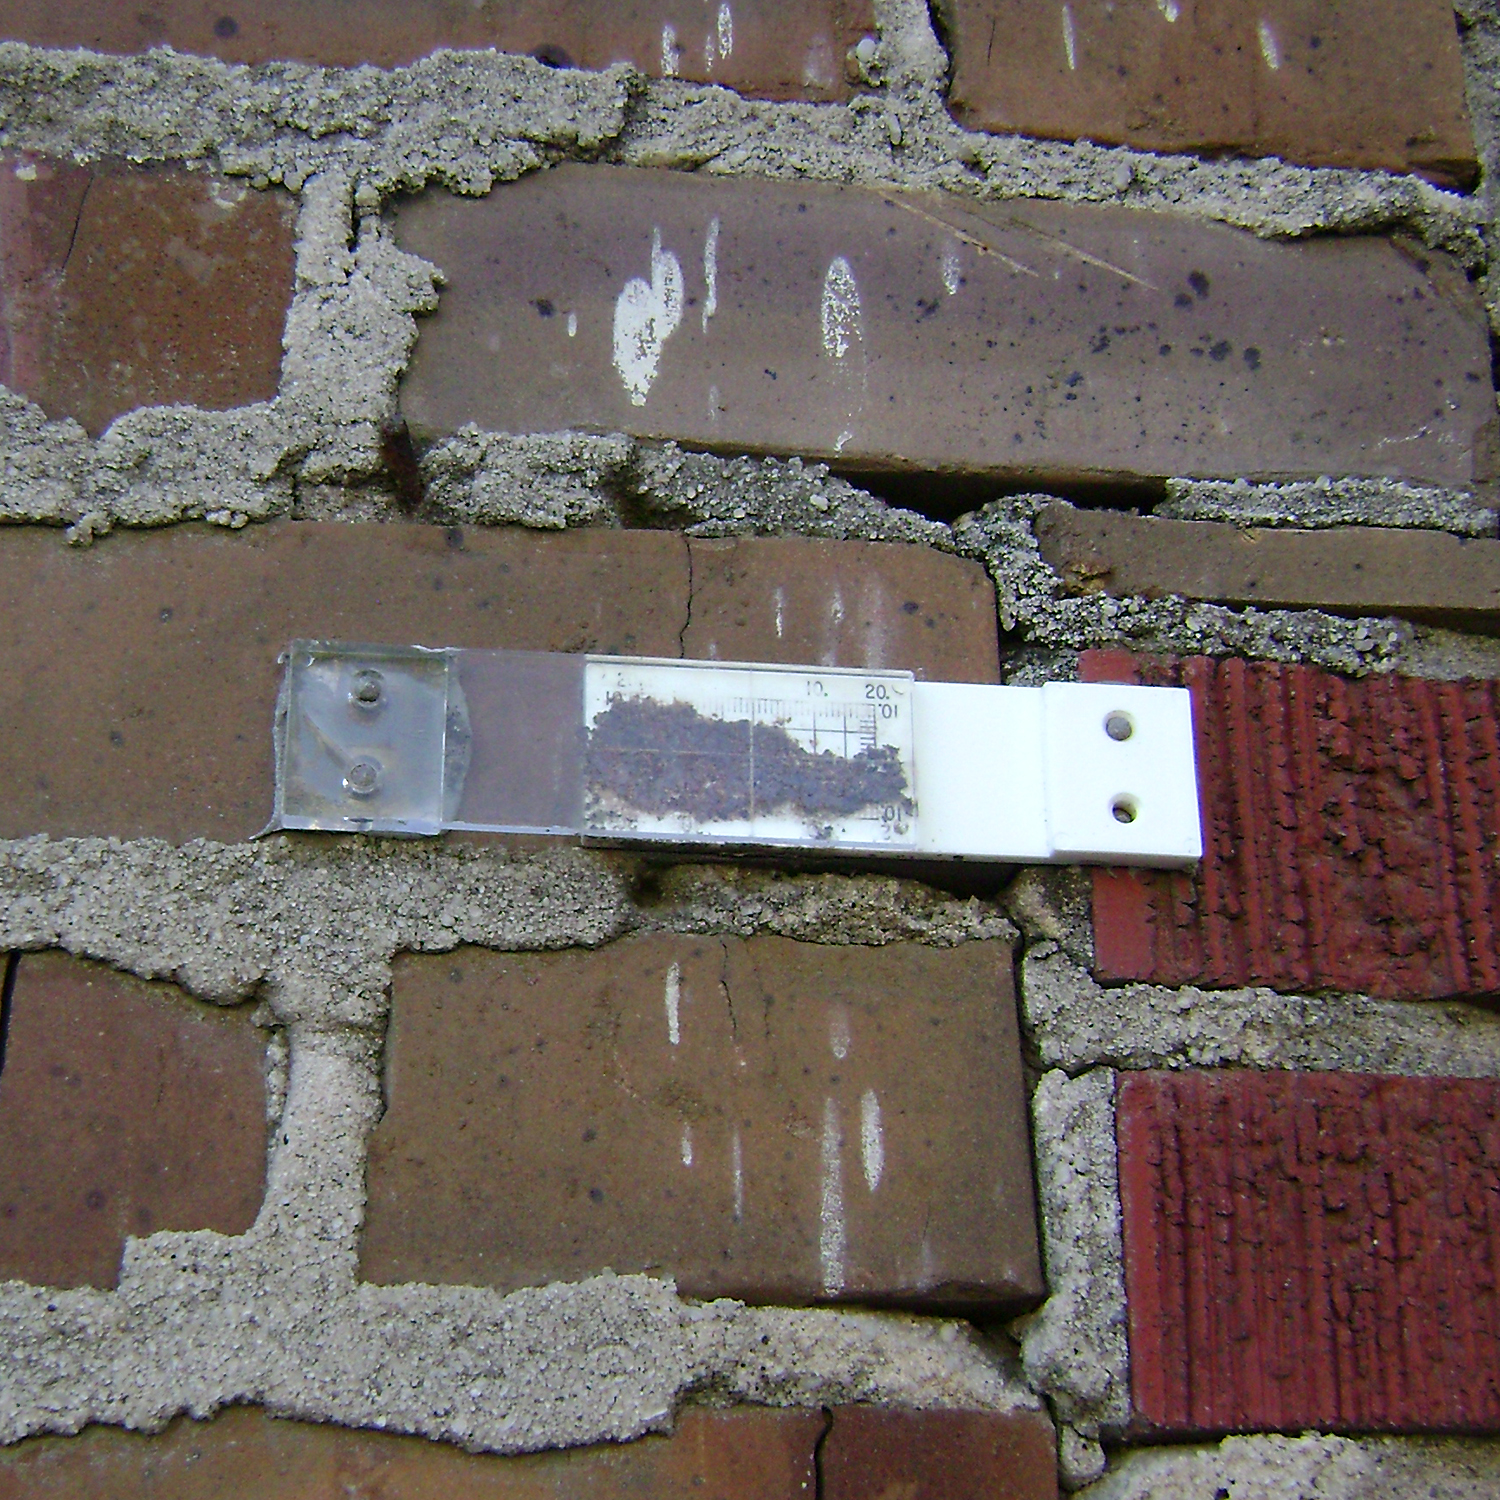 Figure 2. Long-term  crack monitoring  of an old masonry structure. Photo credit: Jason Church, Conservator, National Park Service.